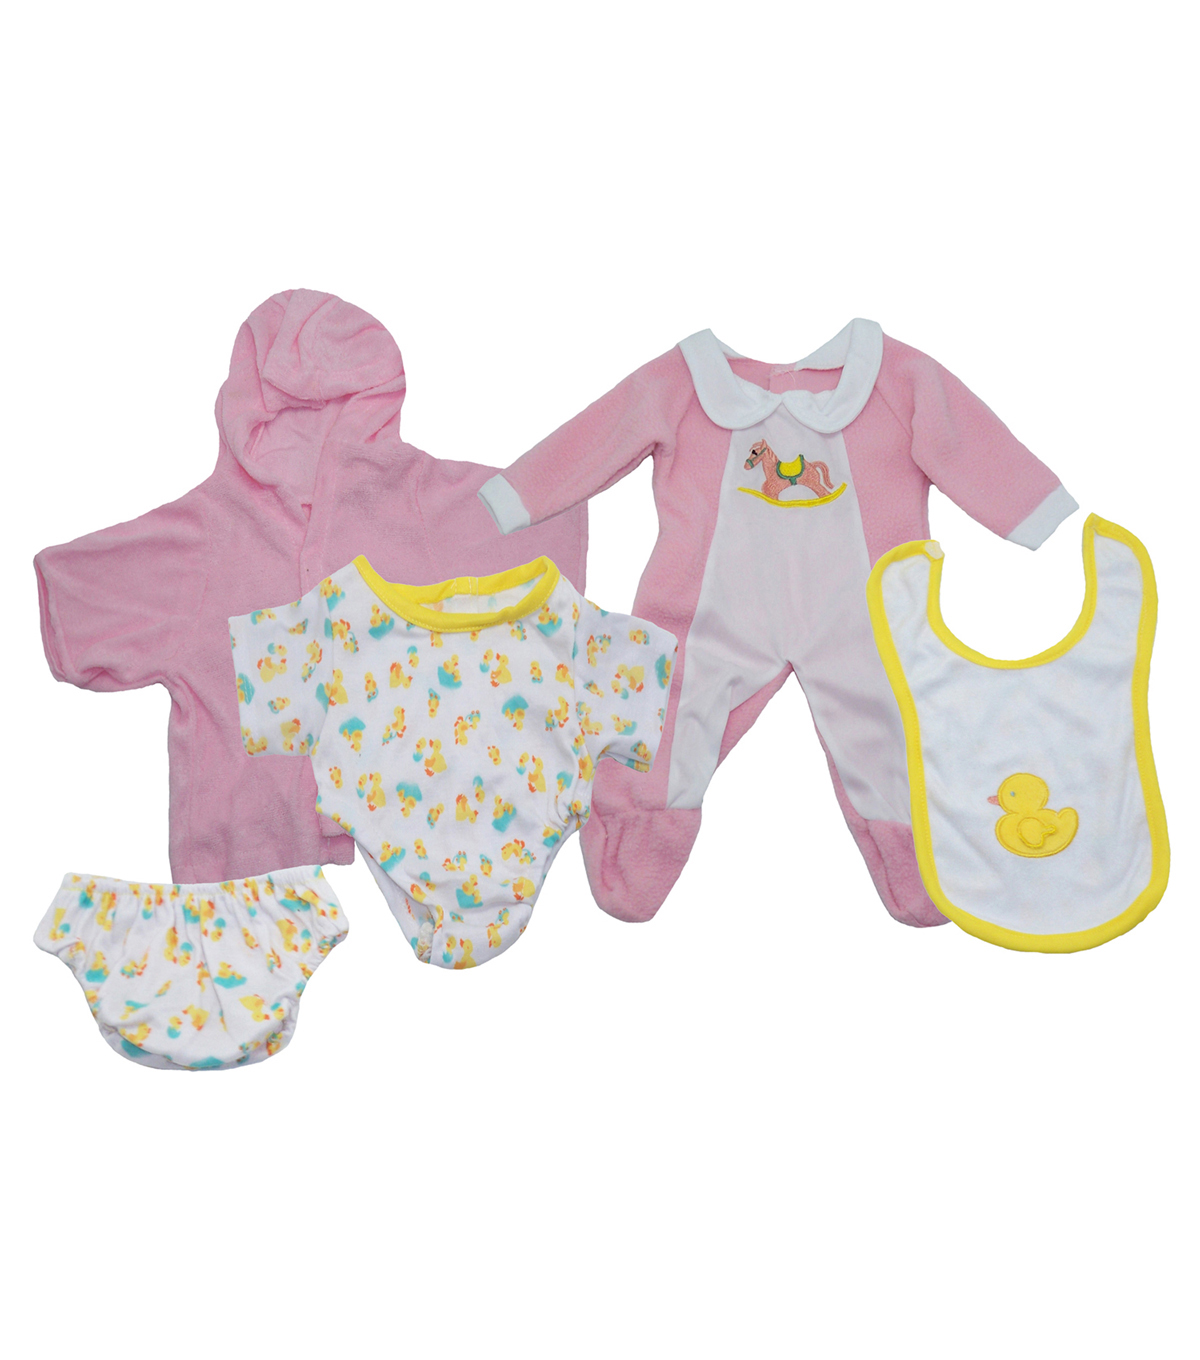 Girl Doll Clothes Set, 3 Outfits